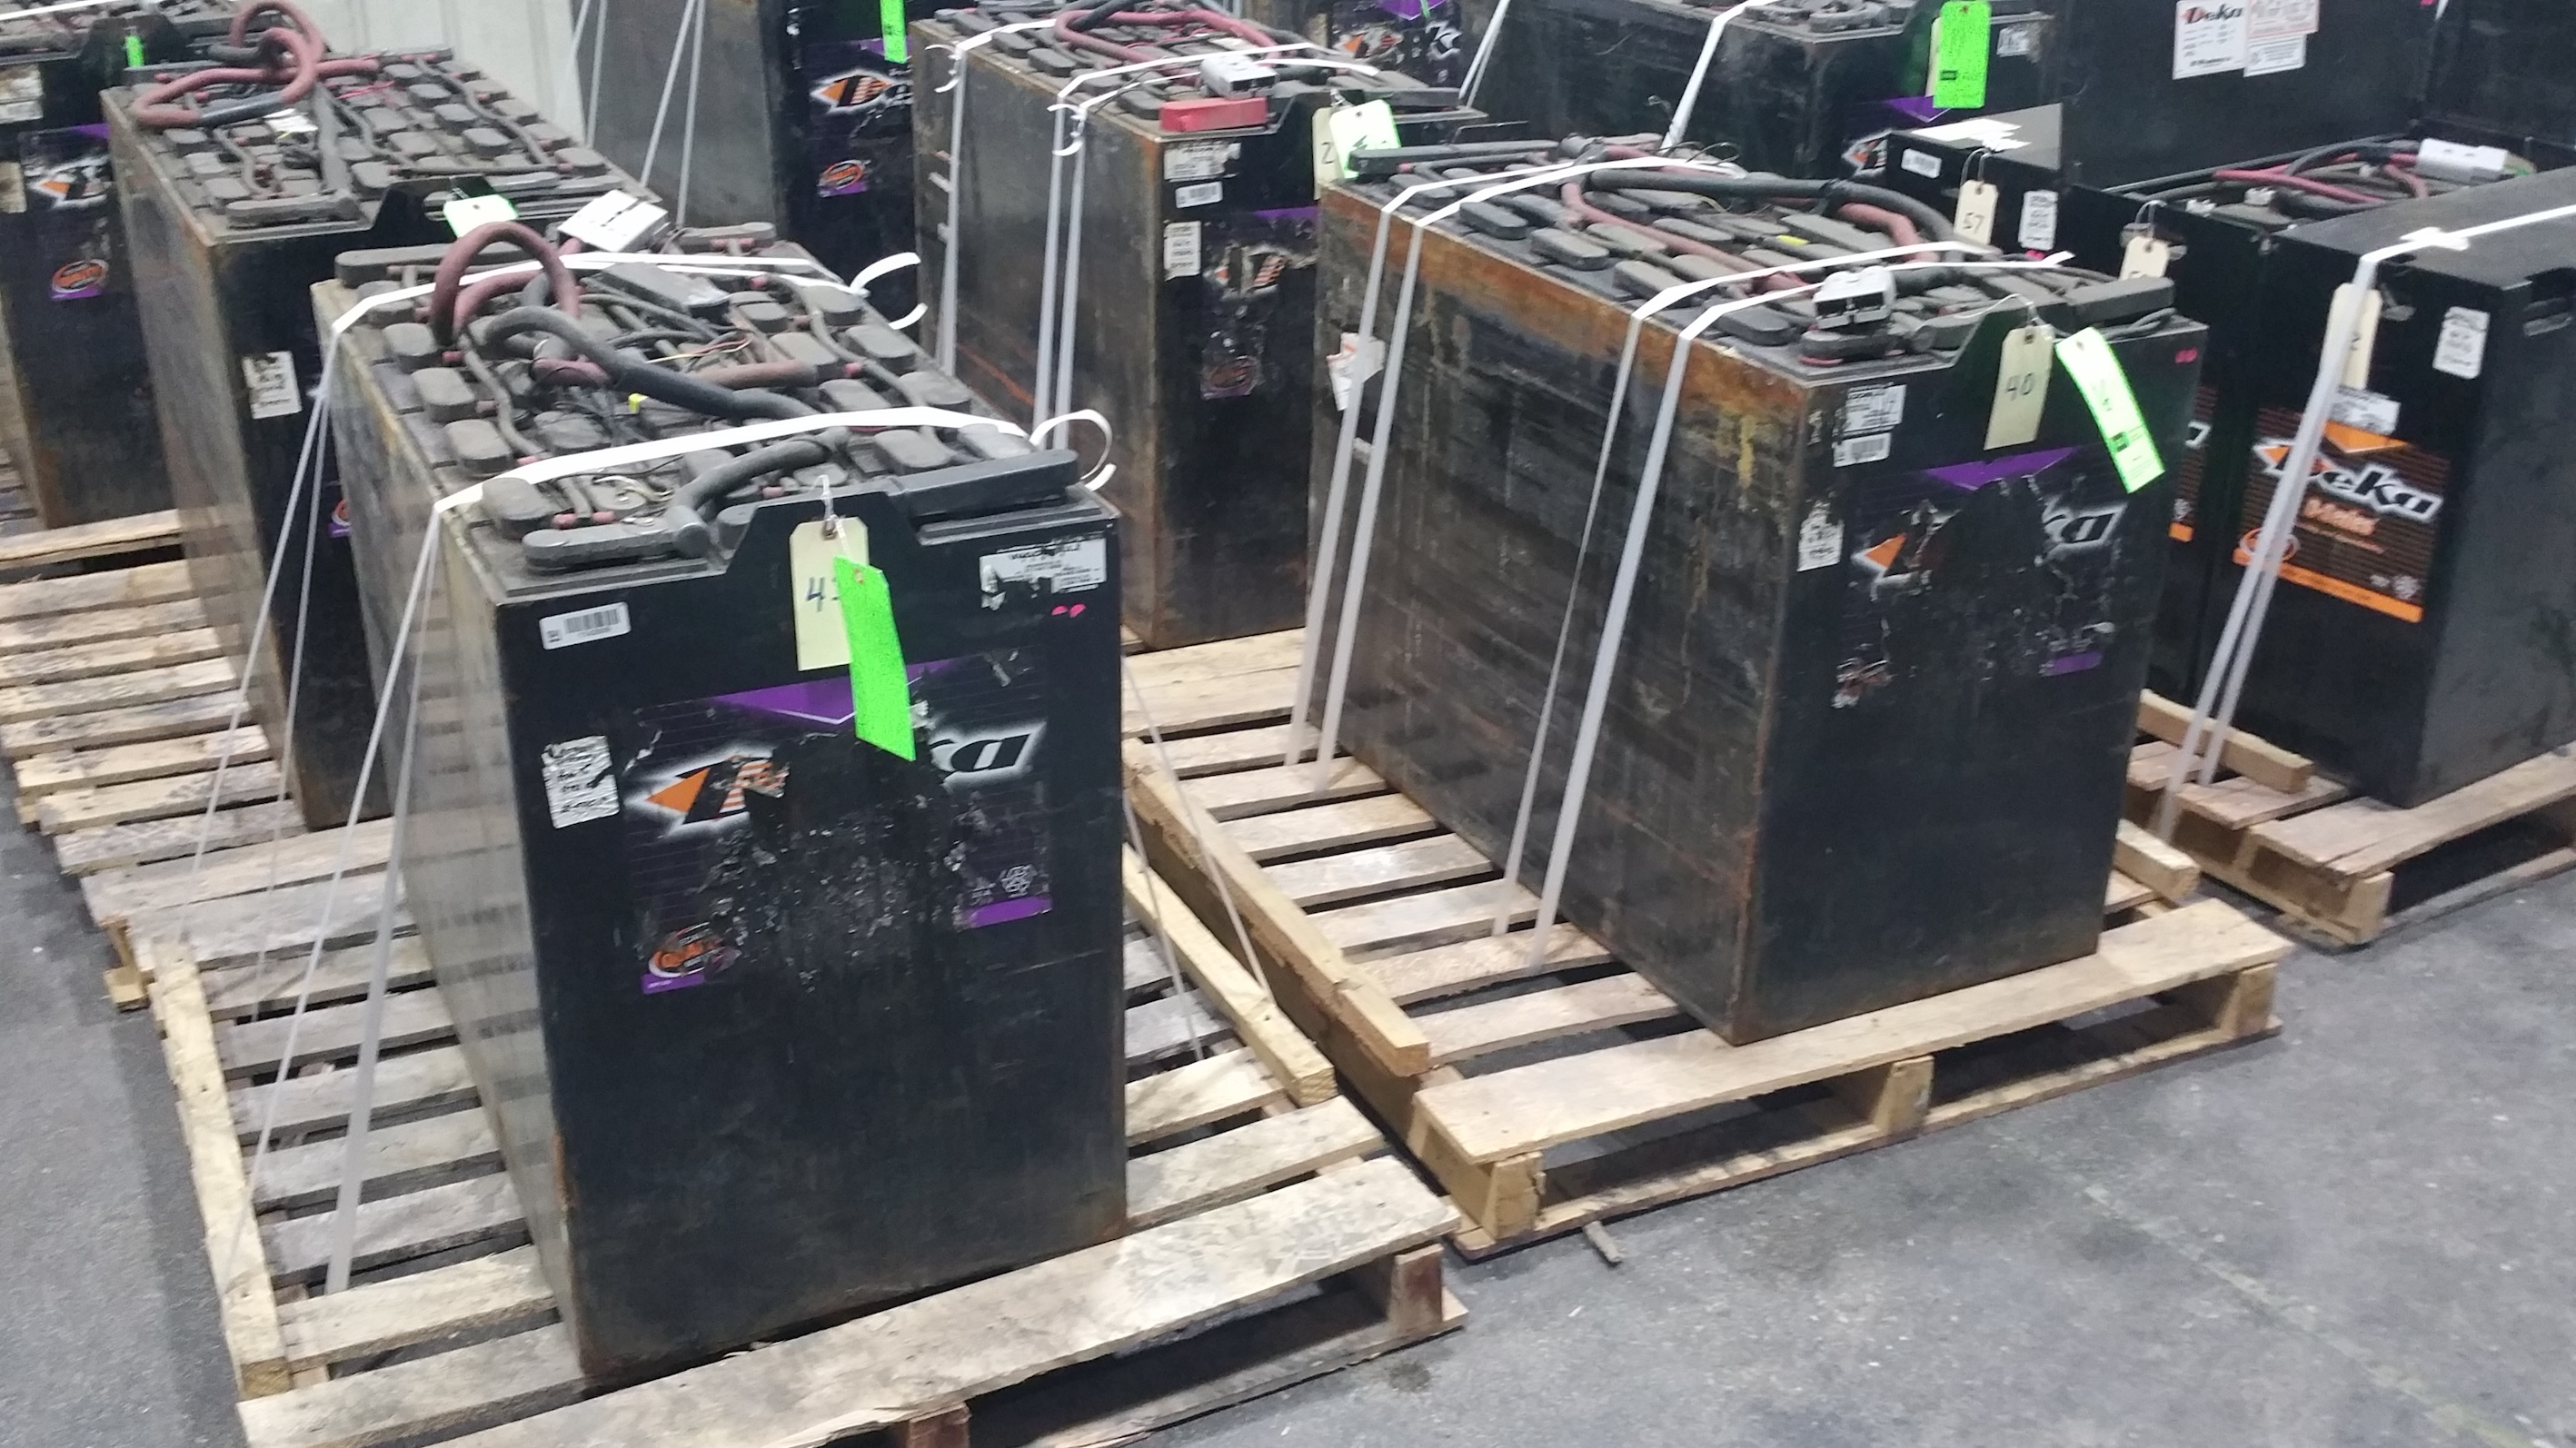 "Lot 39 - Deka Fast Charge 36V Batteries, New in 2014 Used Less Than 6 Months, 20 1/16"" x 38 ¼"" x 30 7/16"","